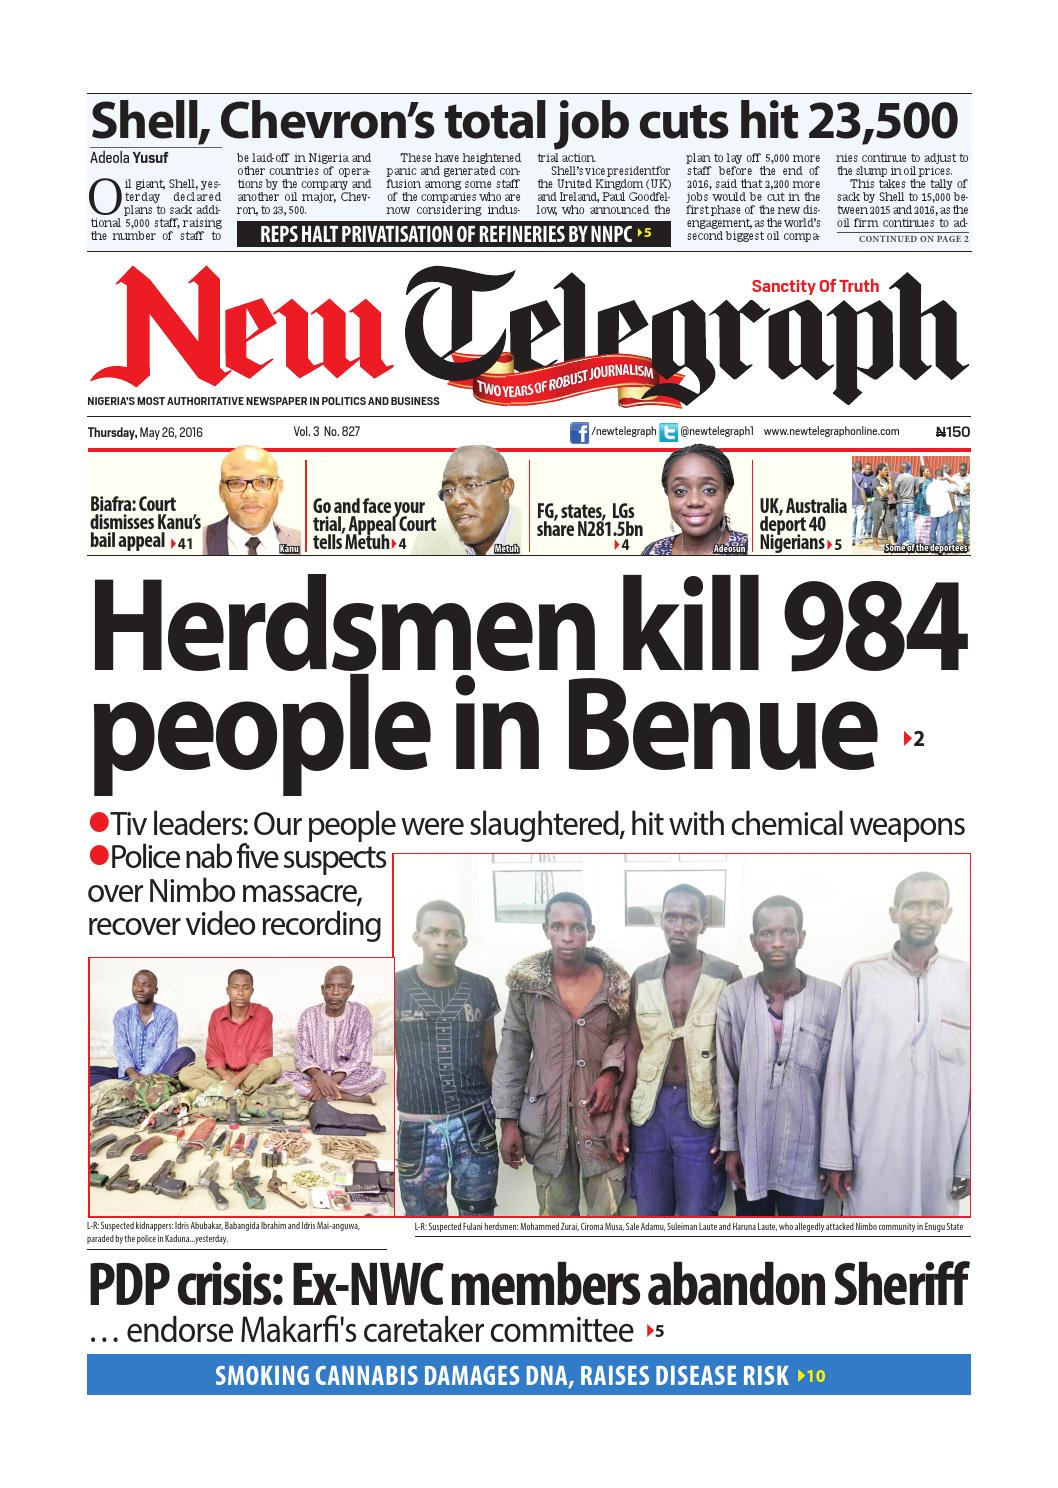 Thursday, may 26, 2016 binder1 by Newtelegraphonline - issuu